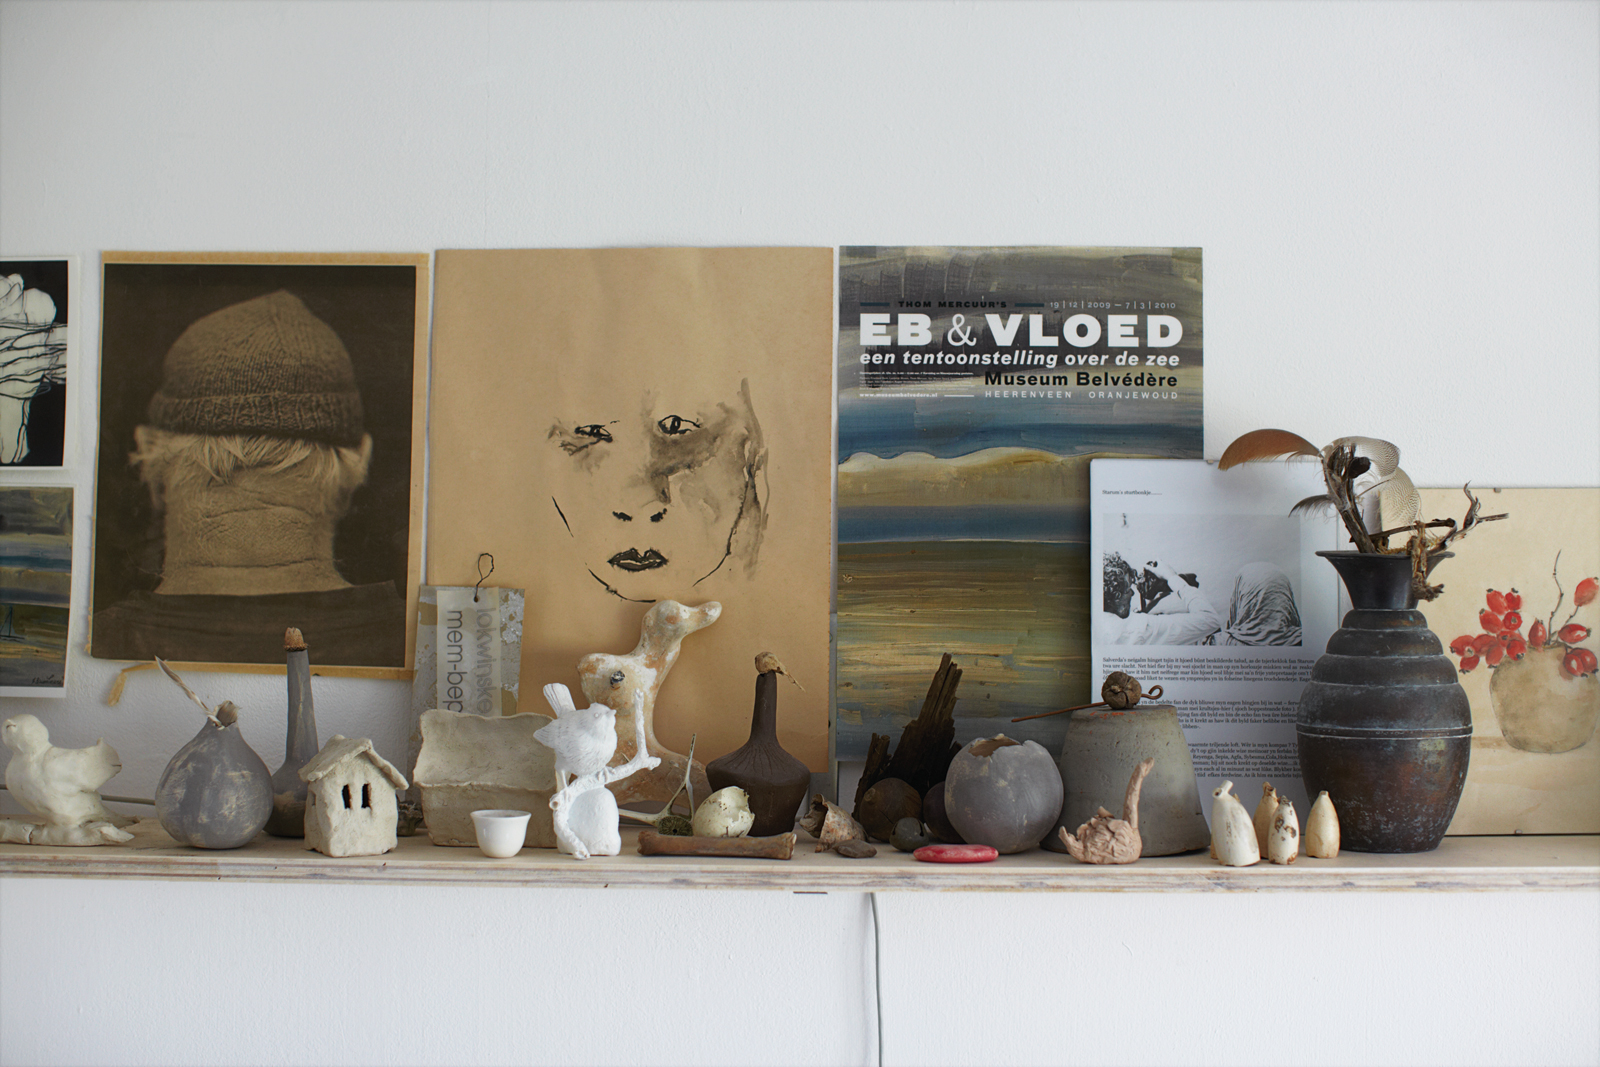 Wall art and handmade objects